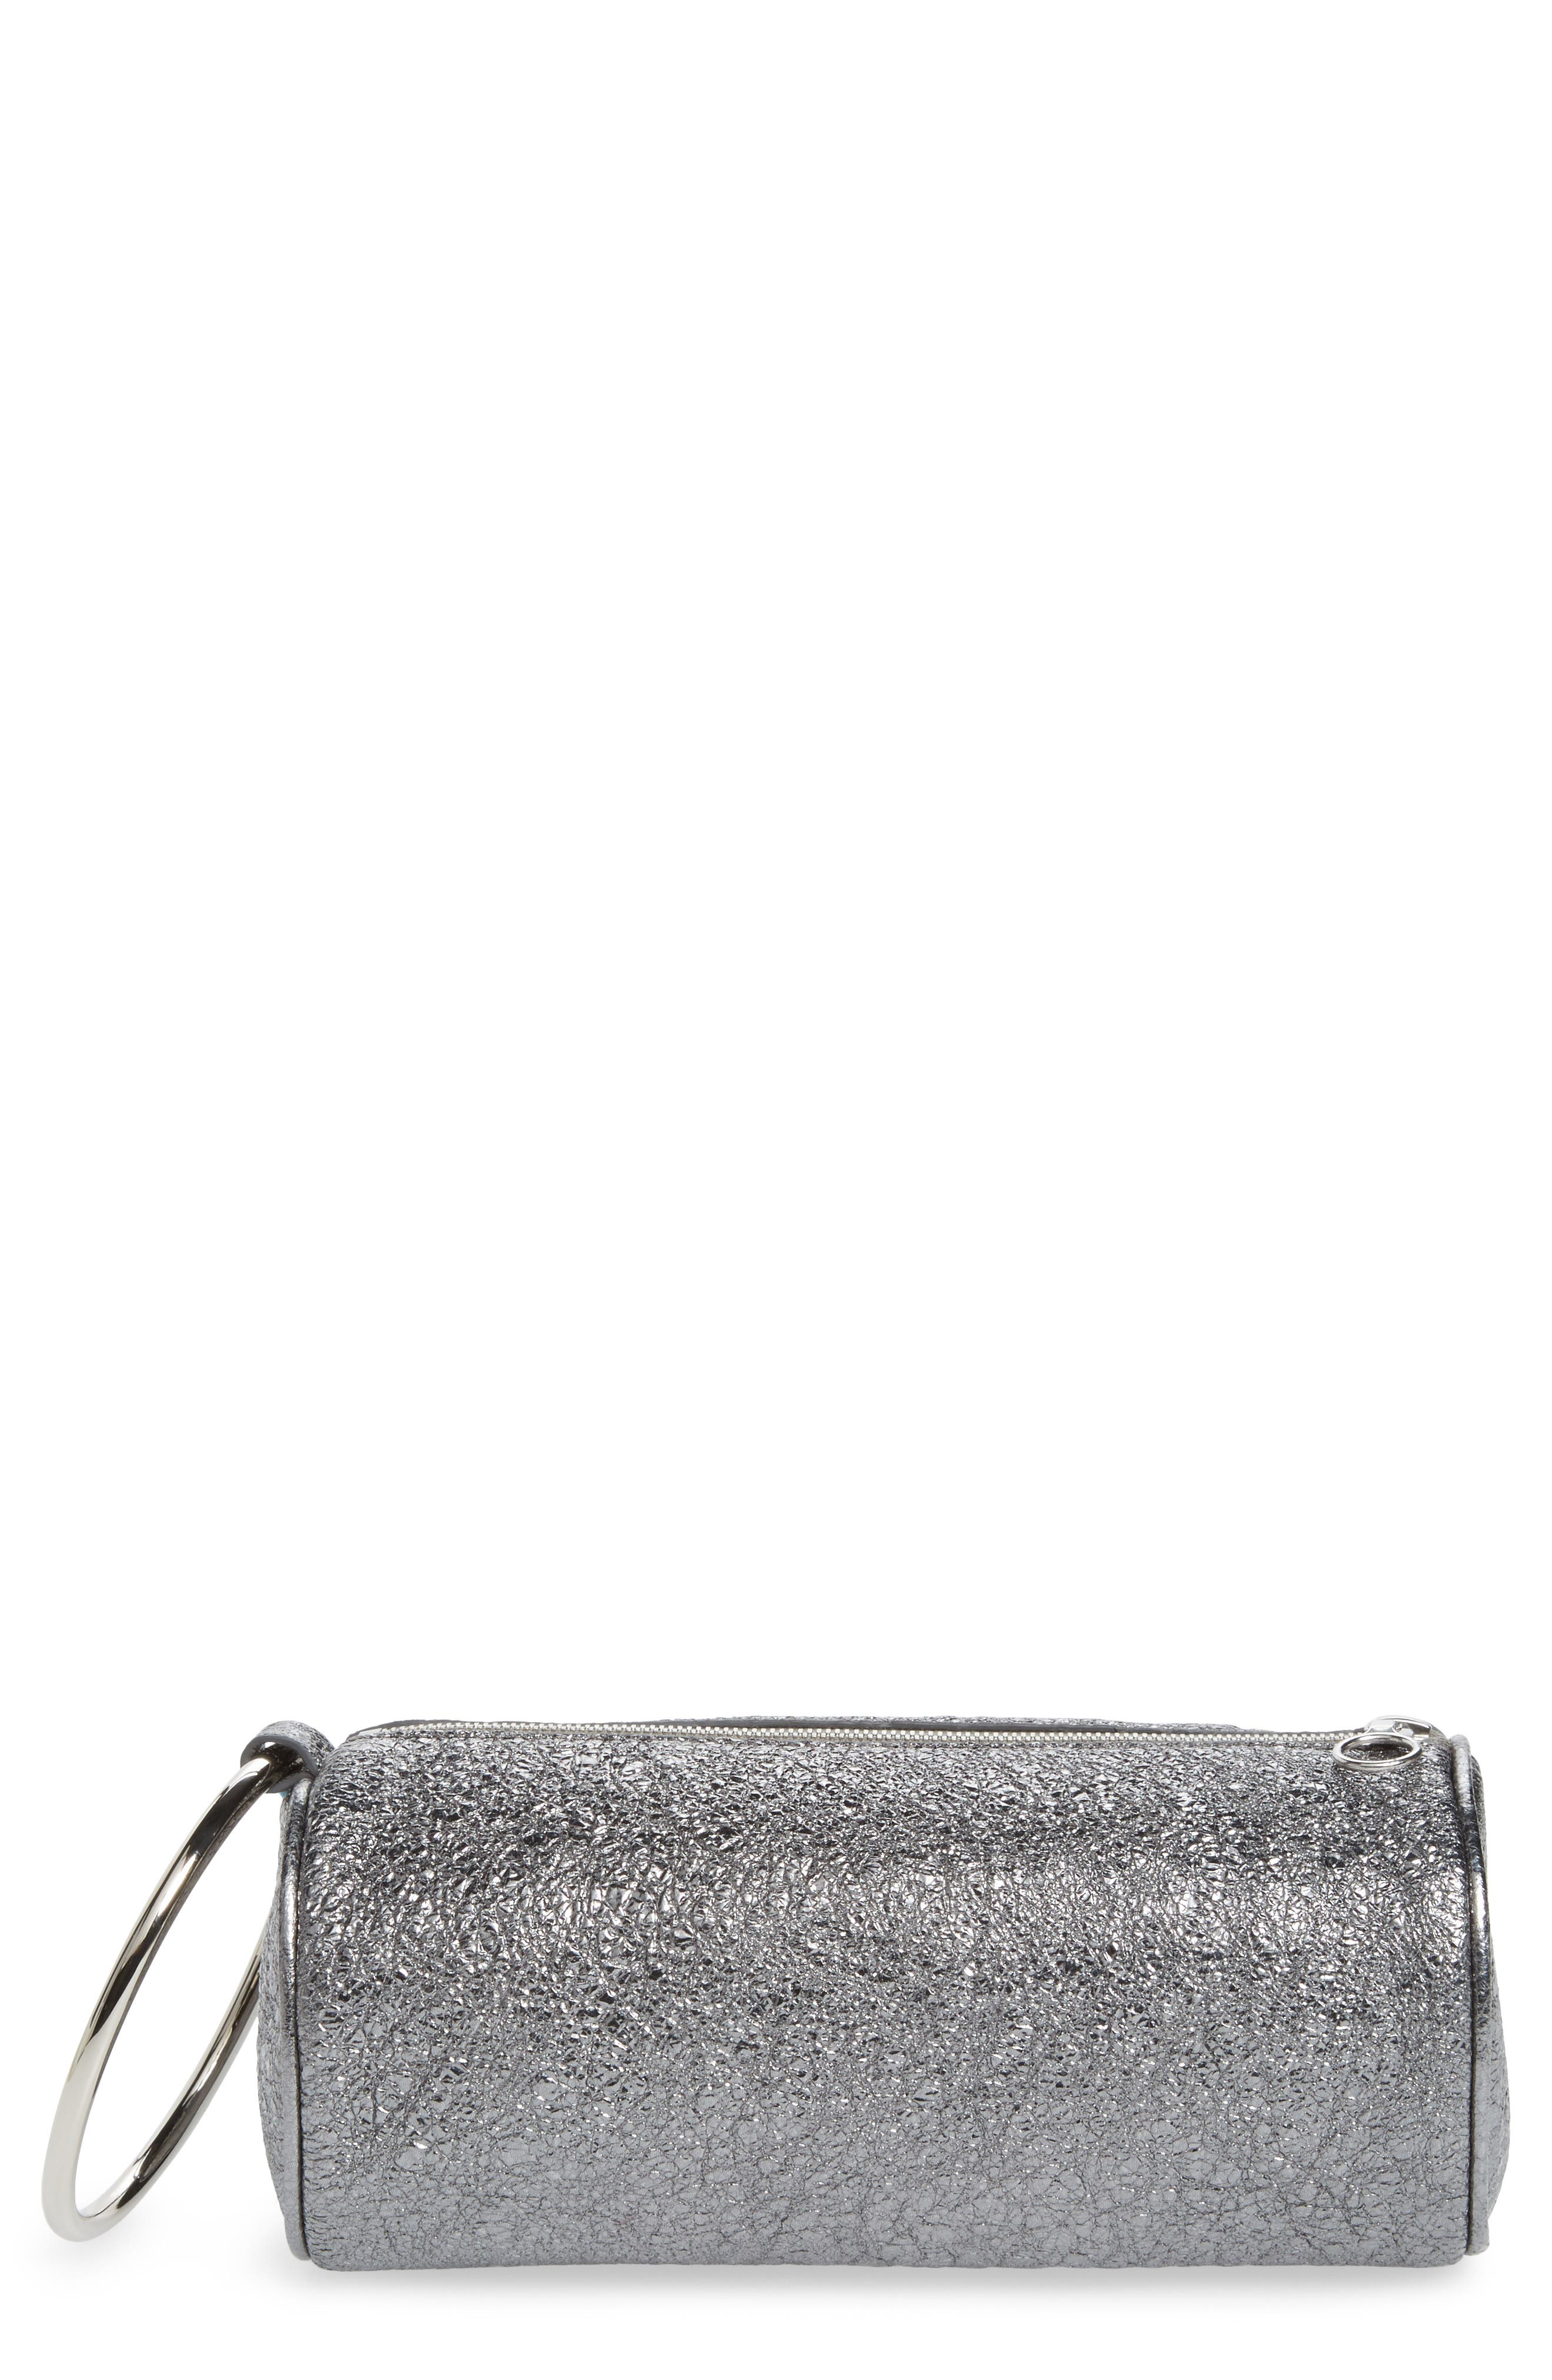 Crinkled Metallic Leather Duffel Wristlet Clutch,                         Main,                         color,